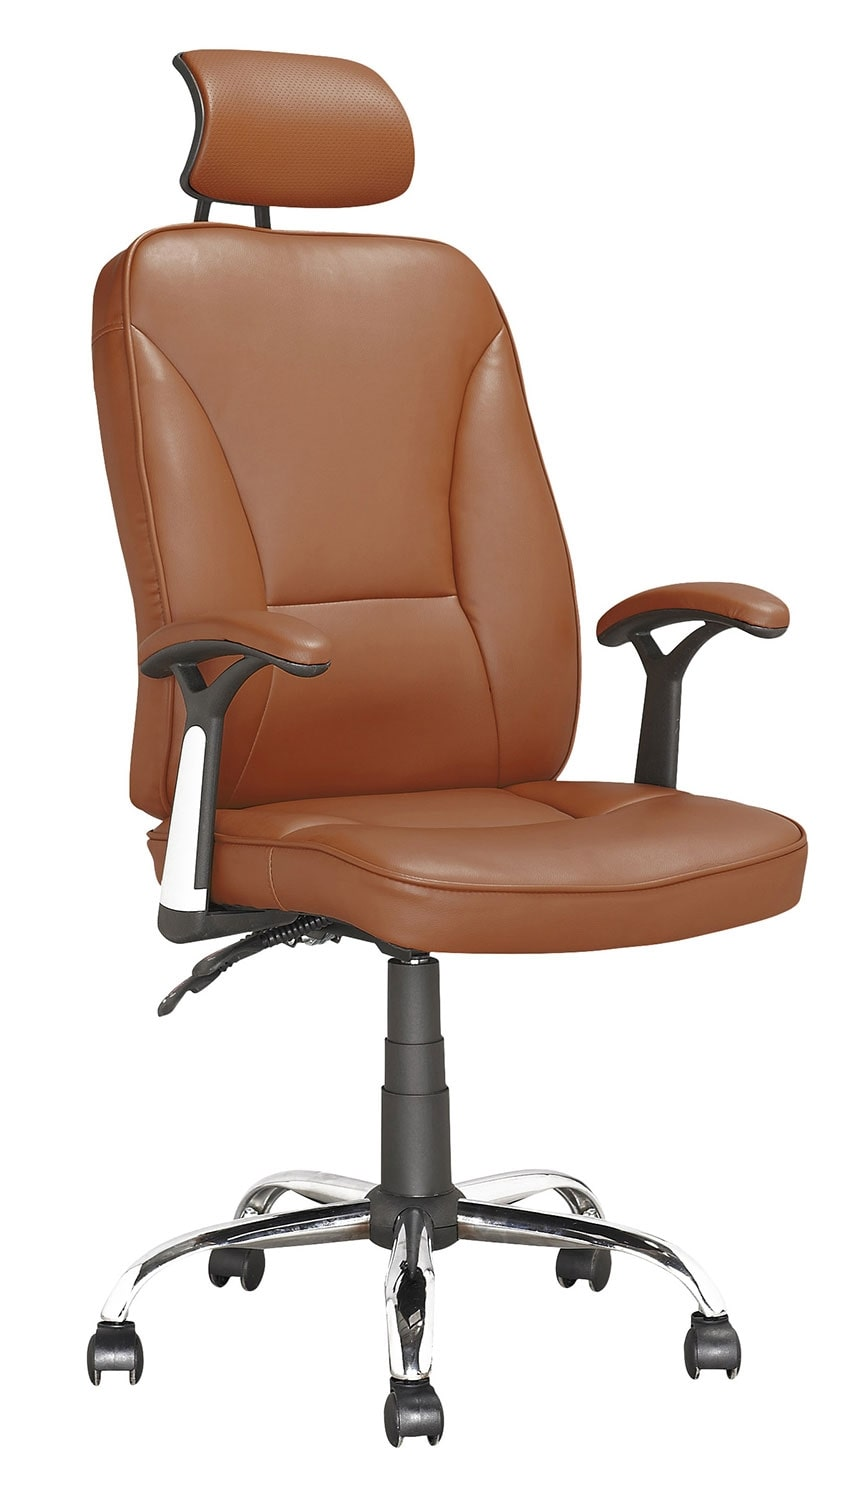 Home Office Furniture - Tulsa Foam-Padded Leatherette Executive Office Chair with Adjustable Headrest